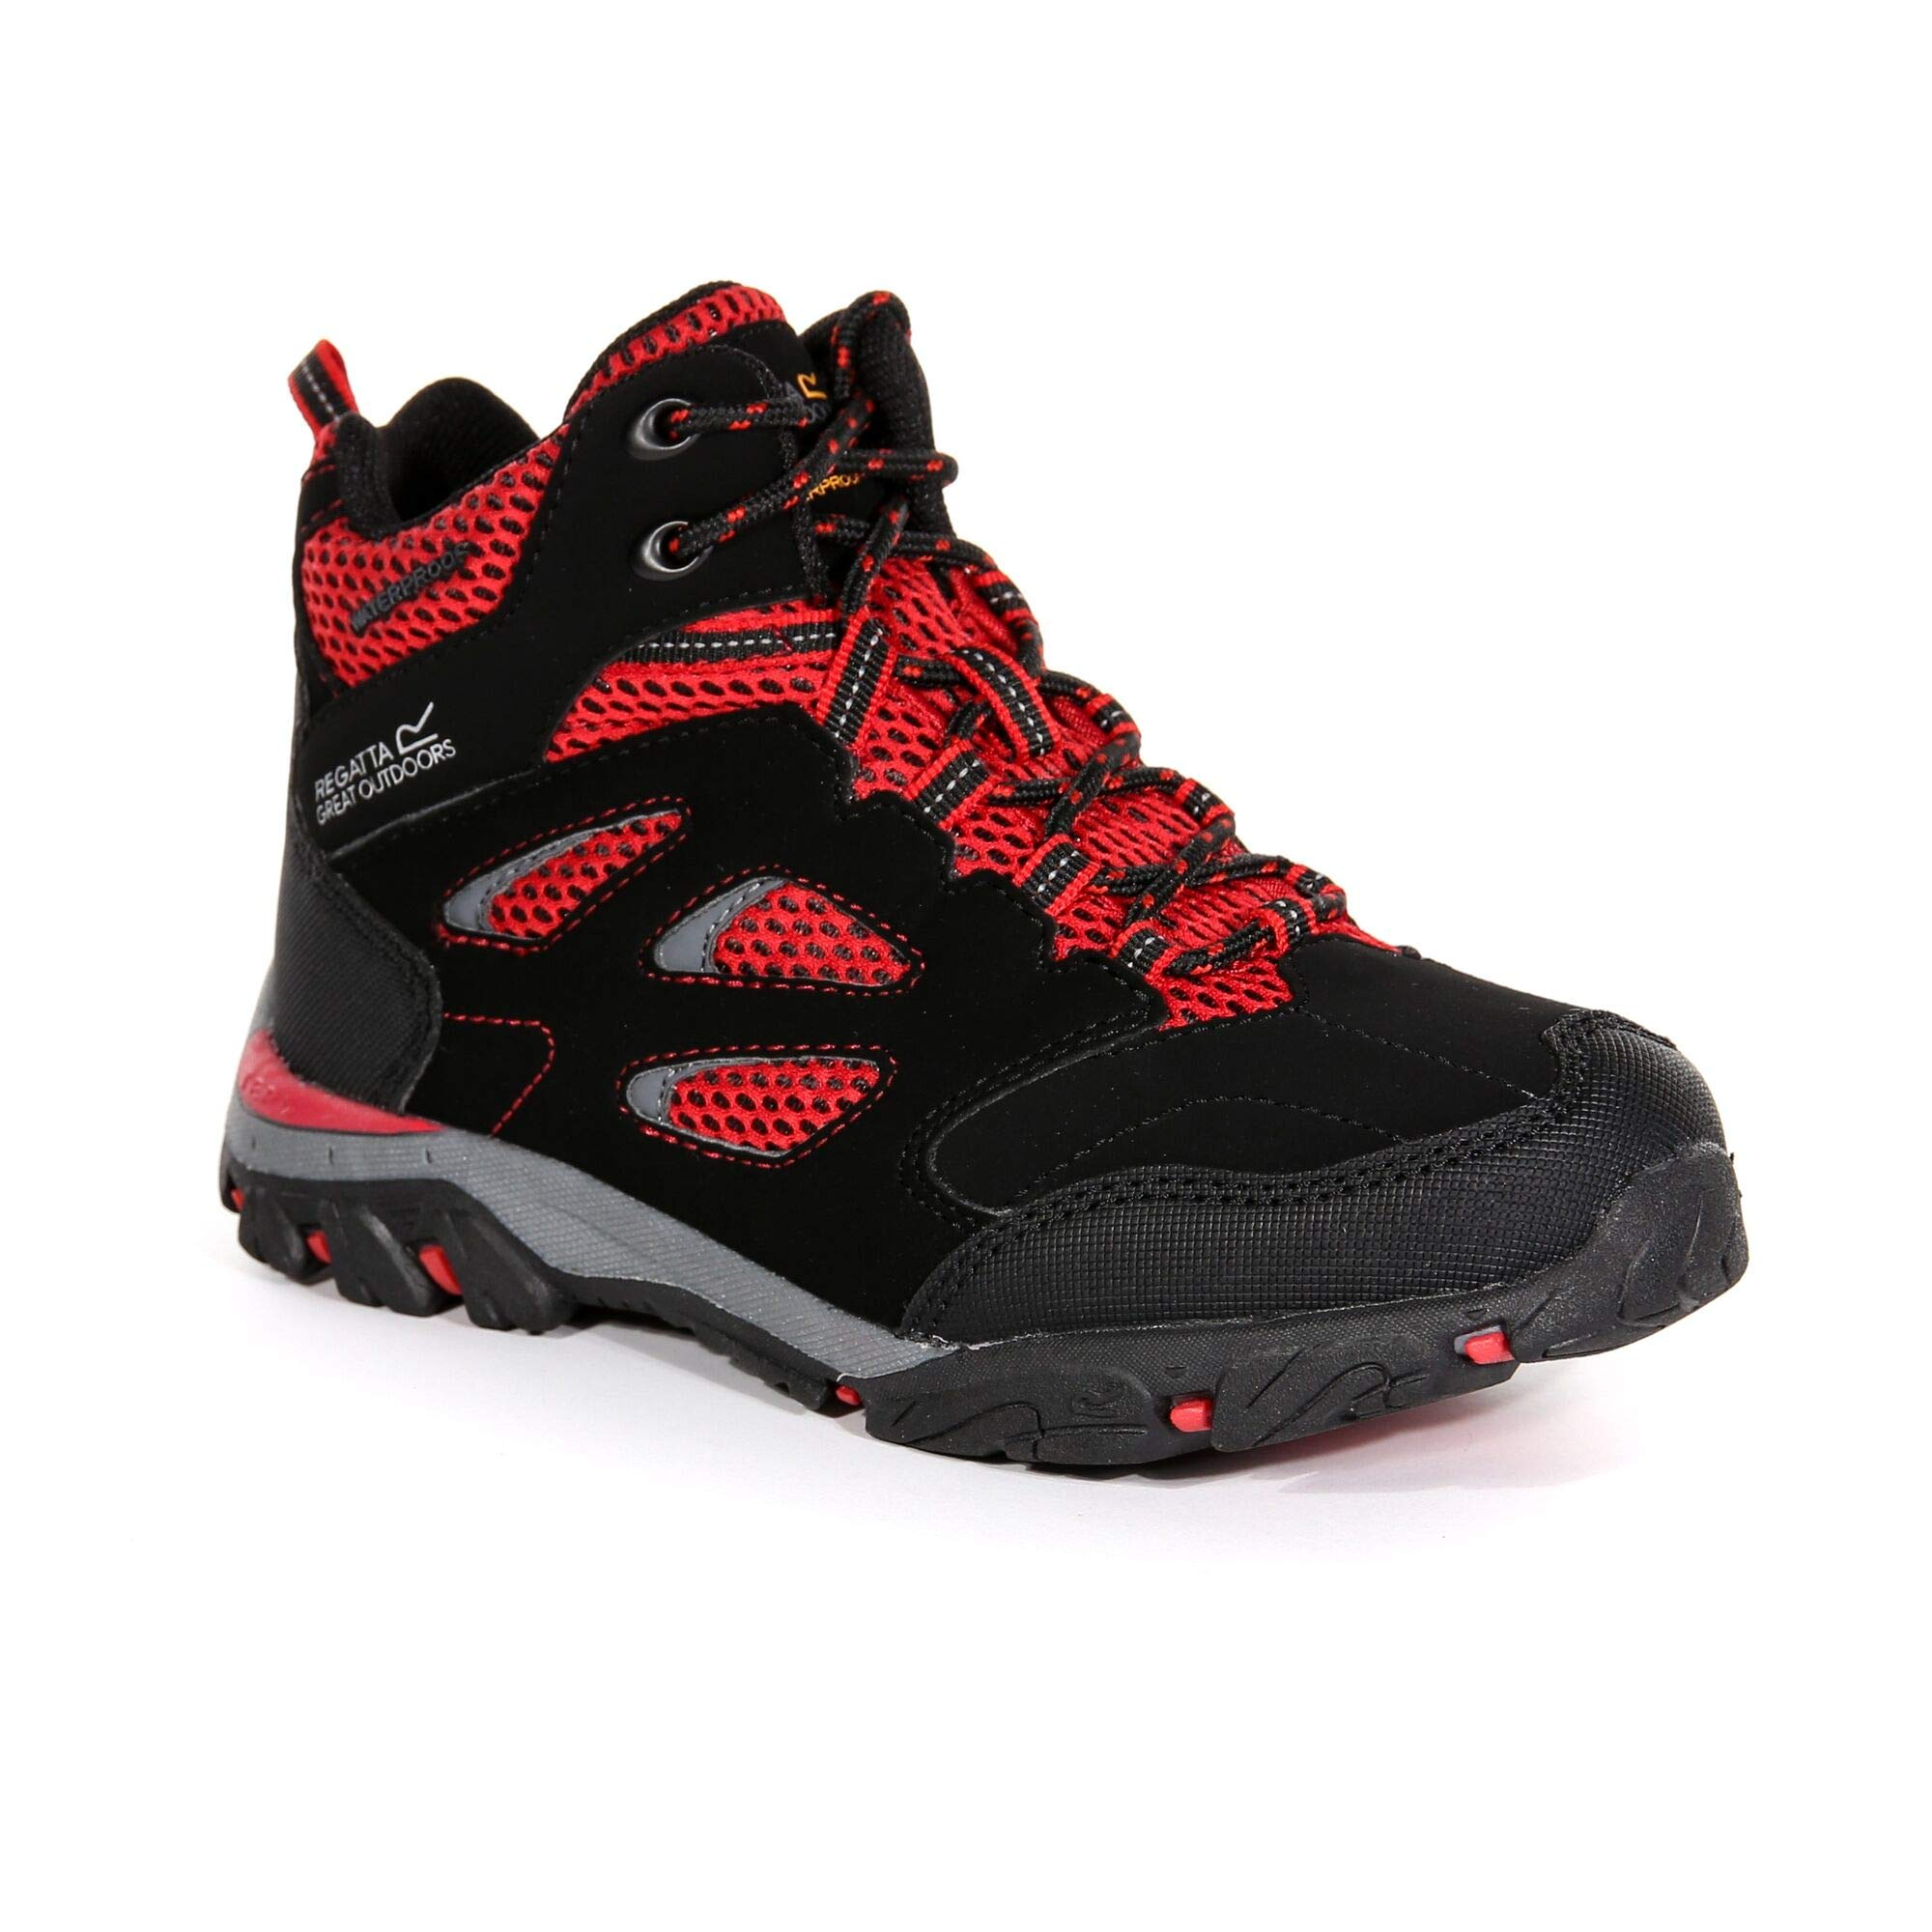 Regatta Childrens//Kids Holcombe IEP Junior Hiking Boots